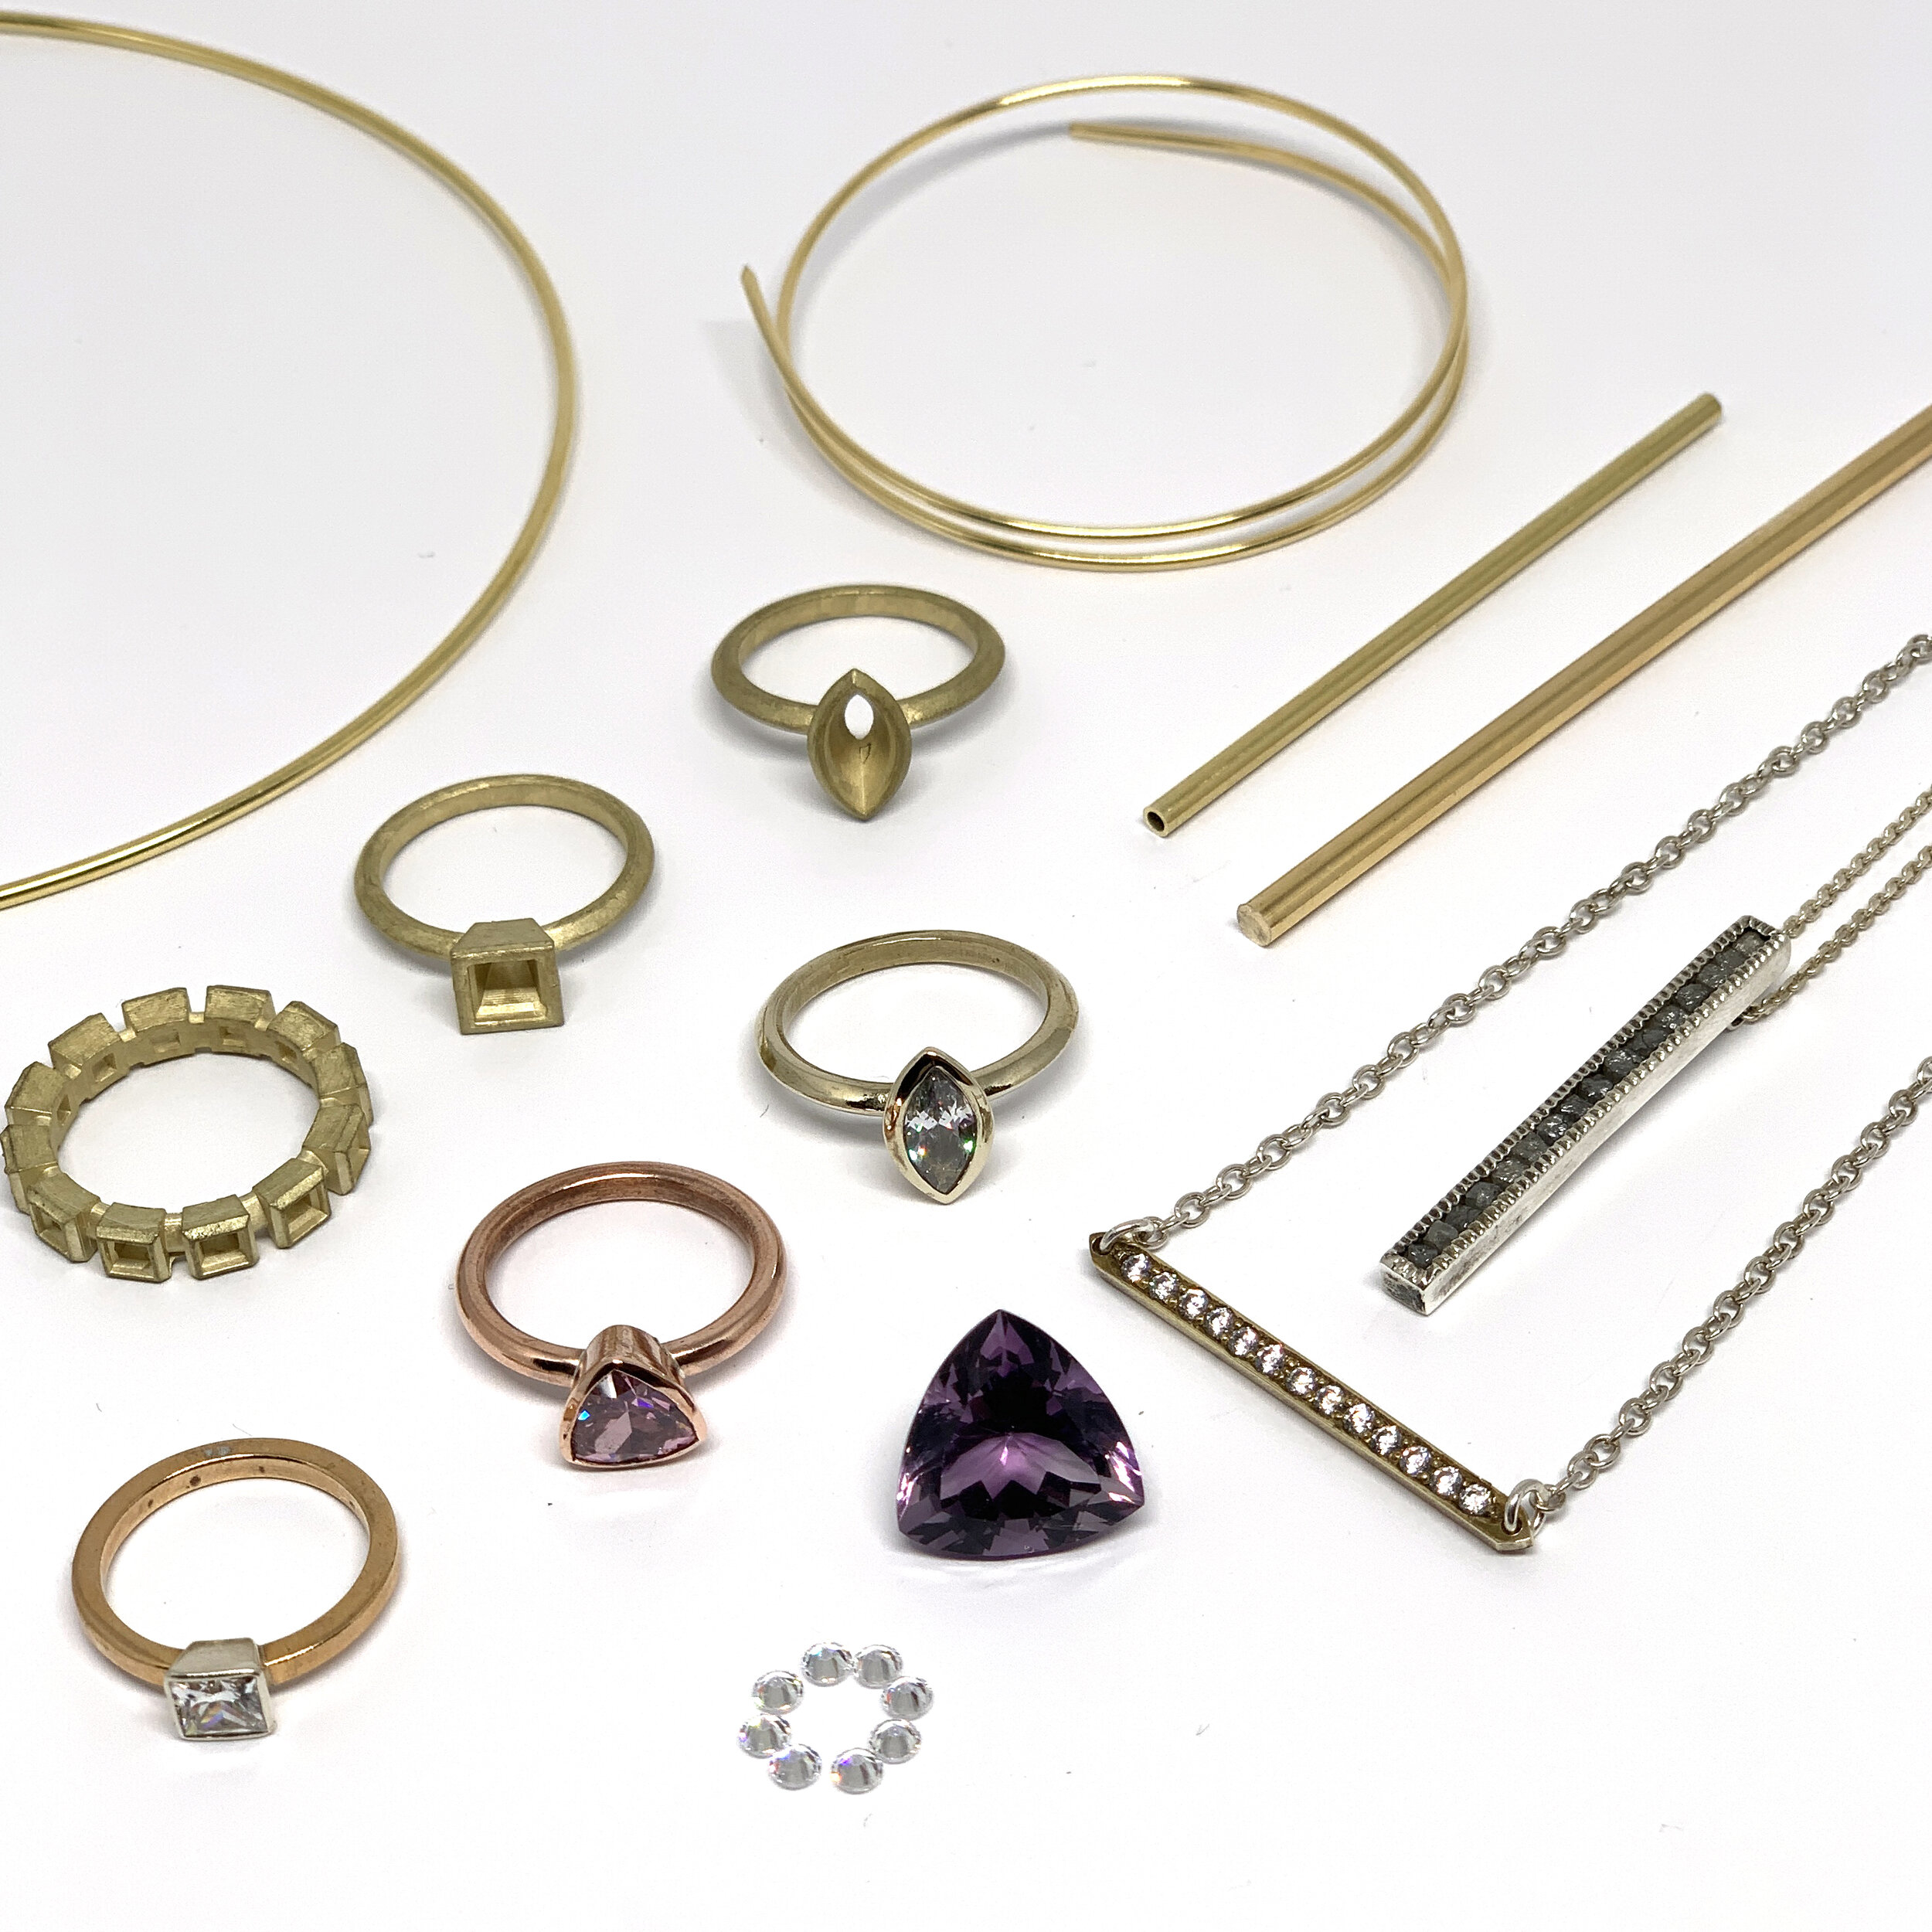 Jewellery Making Kickstarter Level 2 - 4-week full time course aimed at taking your jewellery making skills to the next level